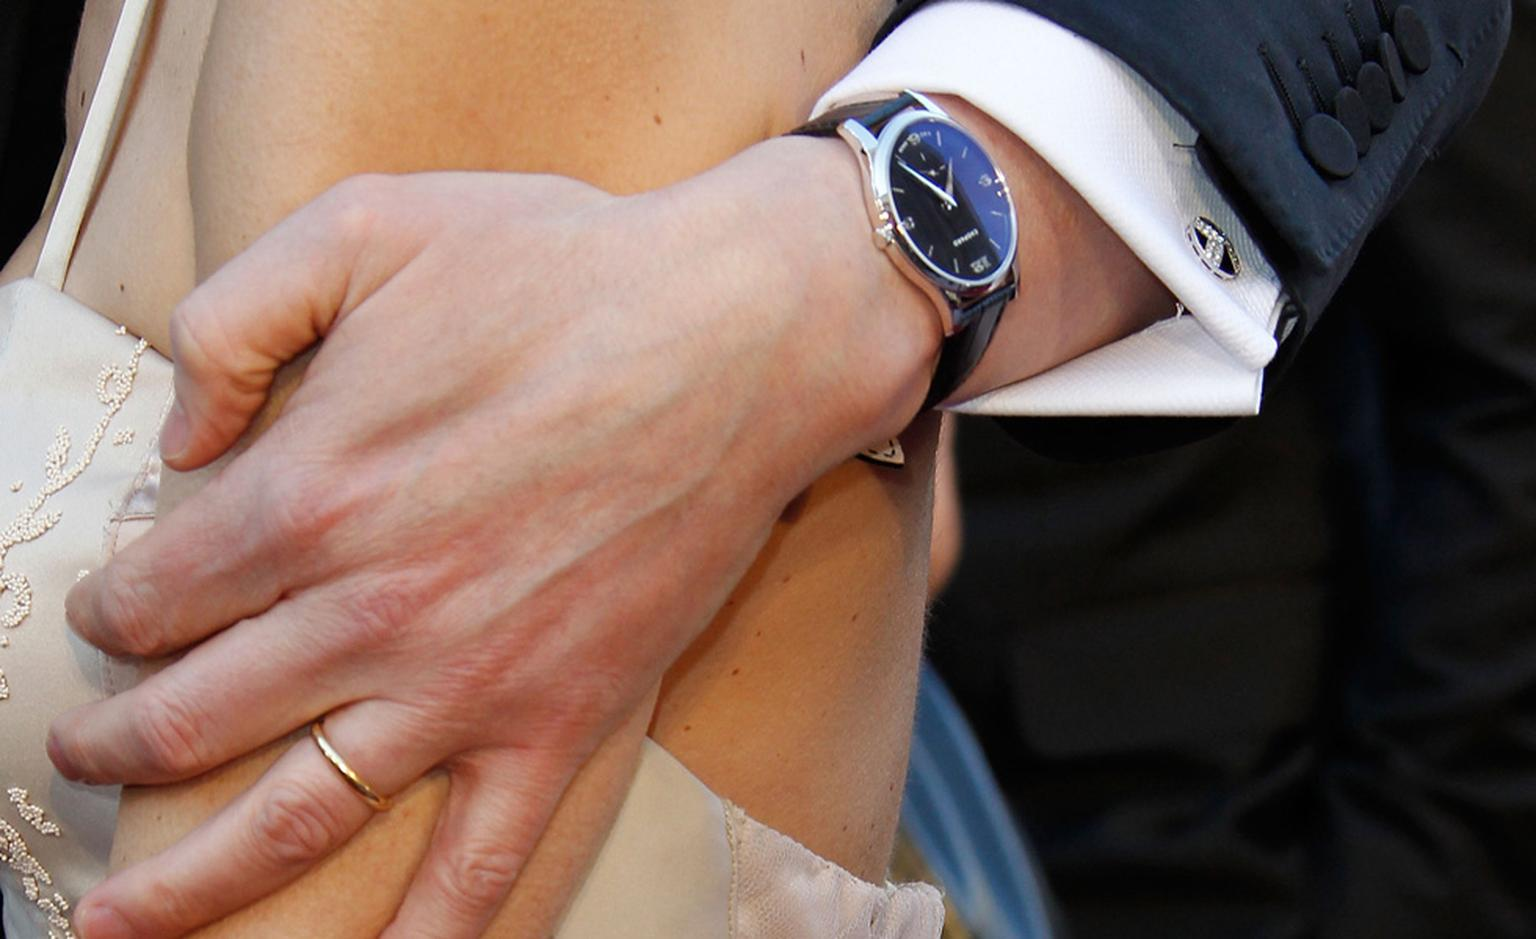 Close up of the the Chopard's L.U.C. XPS white gold watch as worn by Colin Firth to collect his award at the Oscars 2011